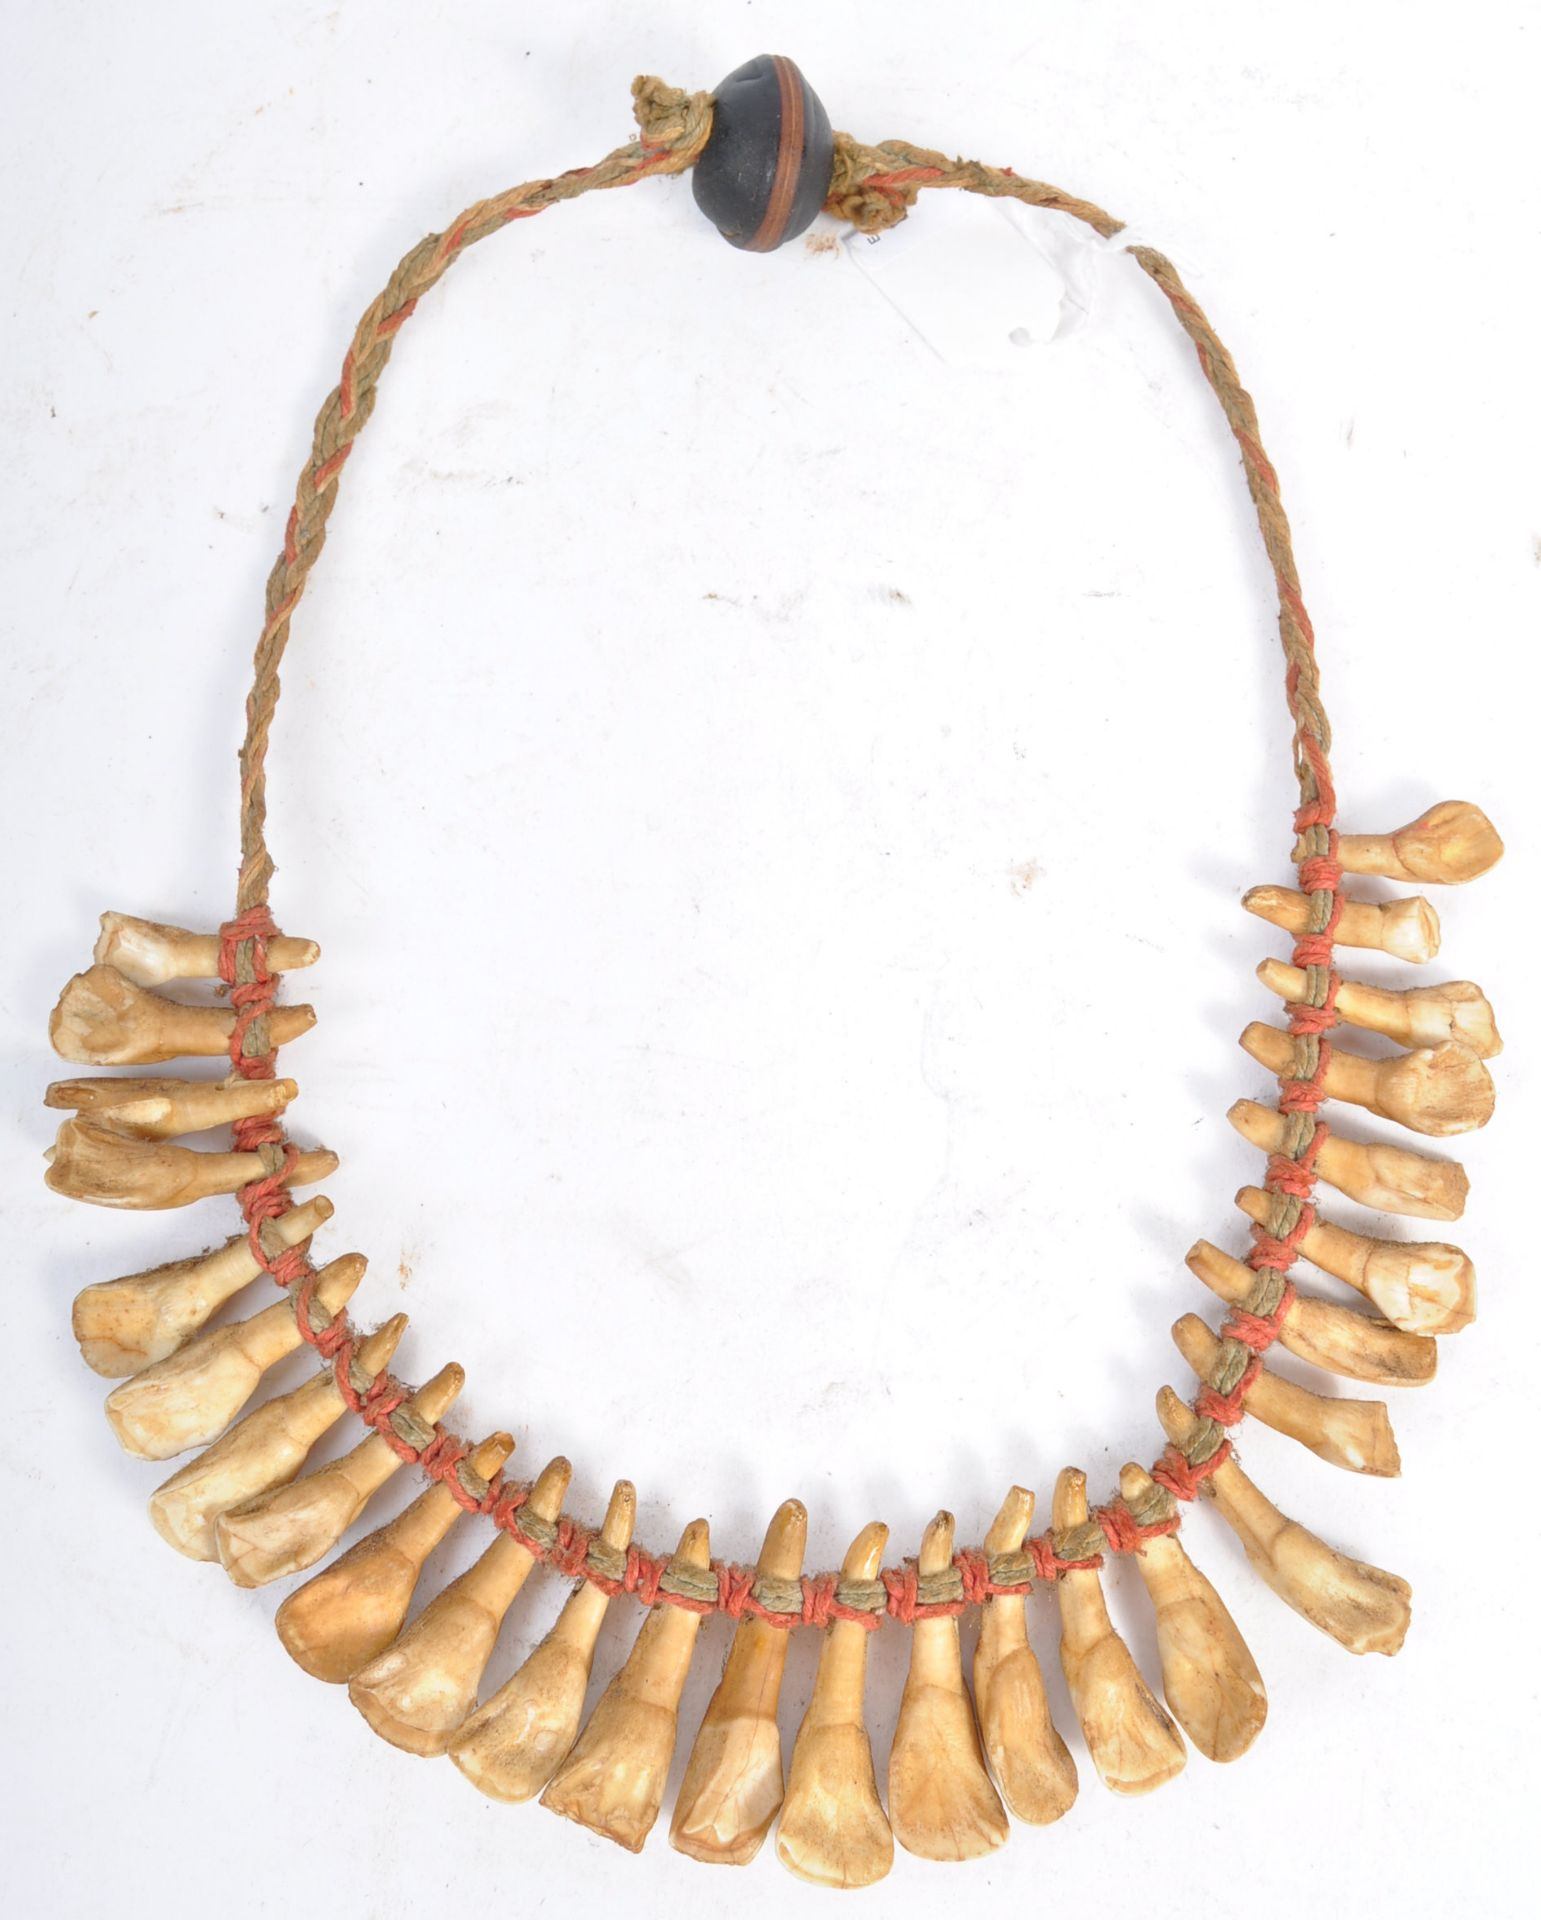 Los 289 - TRIBAL ANTIQUITIES - 19TH CENTURY AFRICAN TOOTH NECKLACE